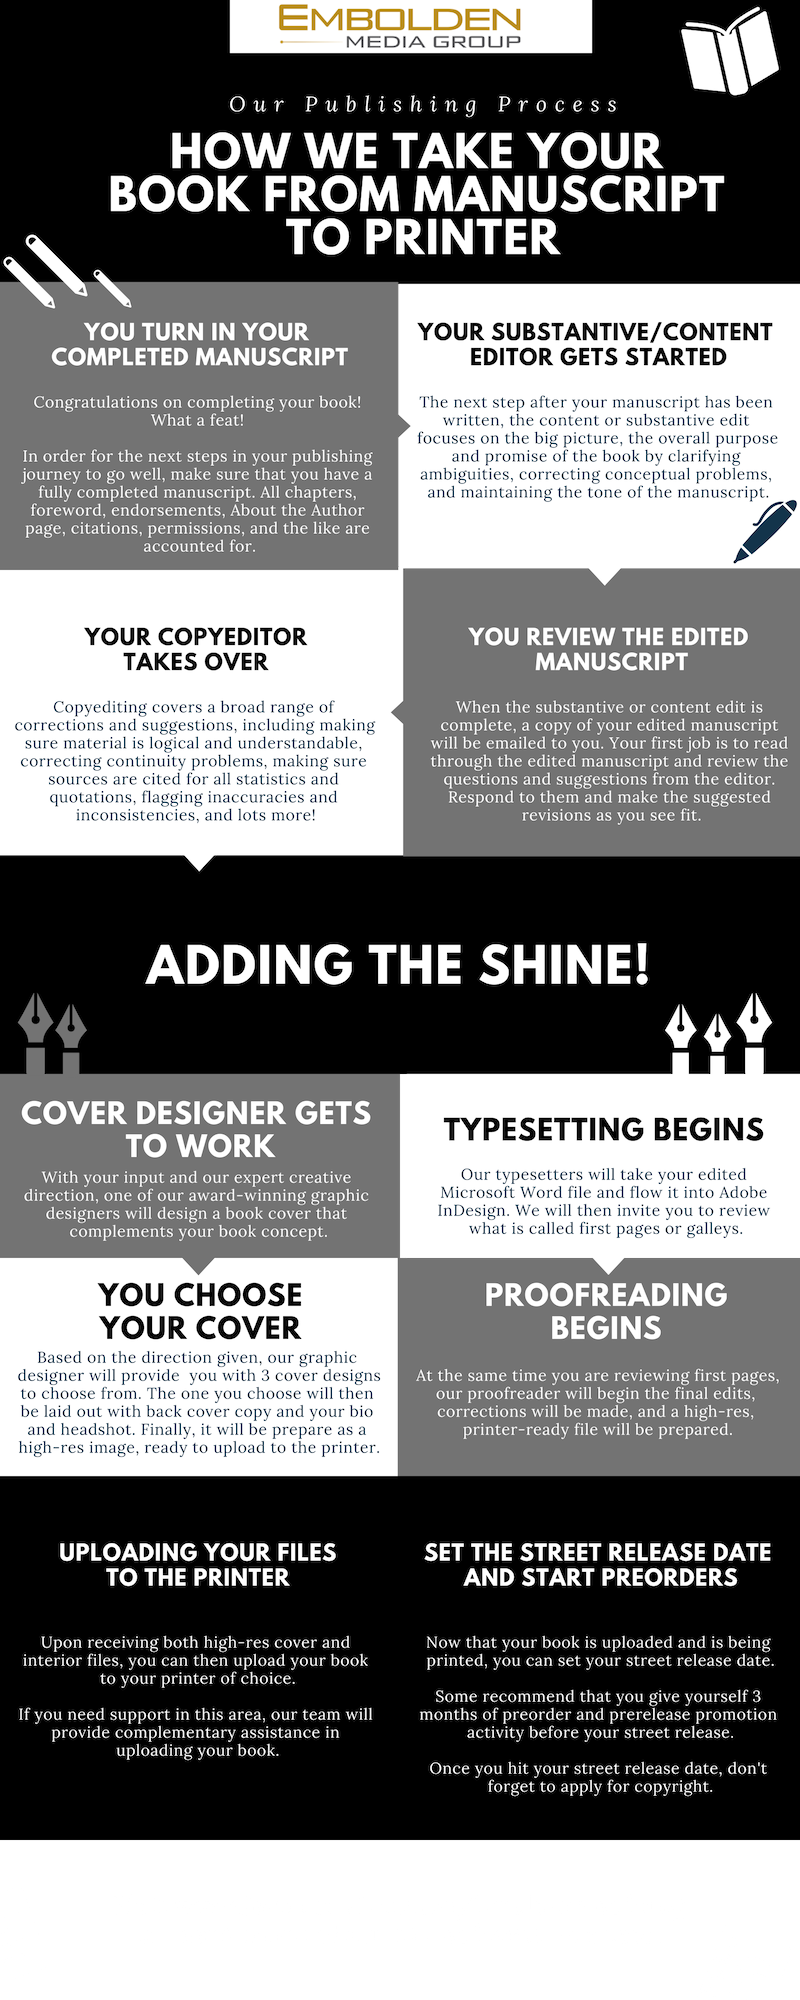 EMG Publishing Process INFOGRAPHIC.png